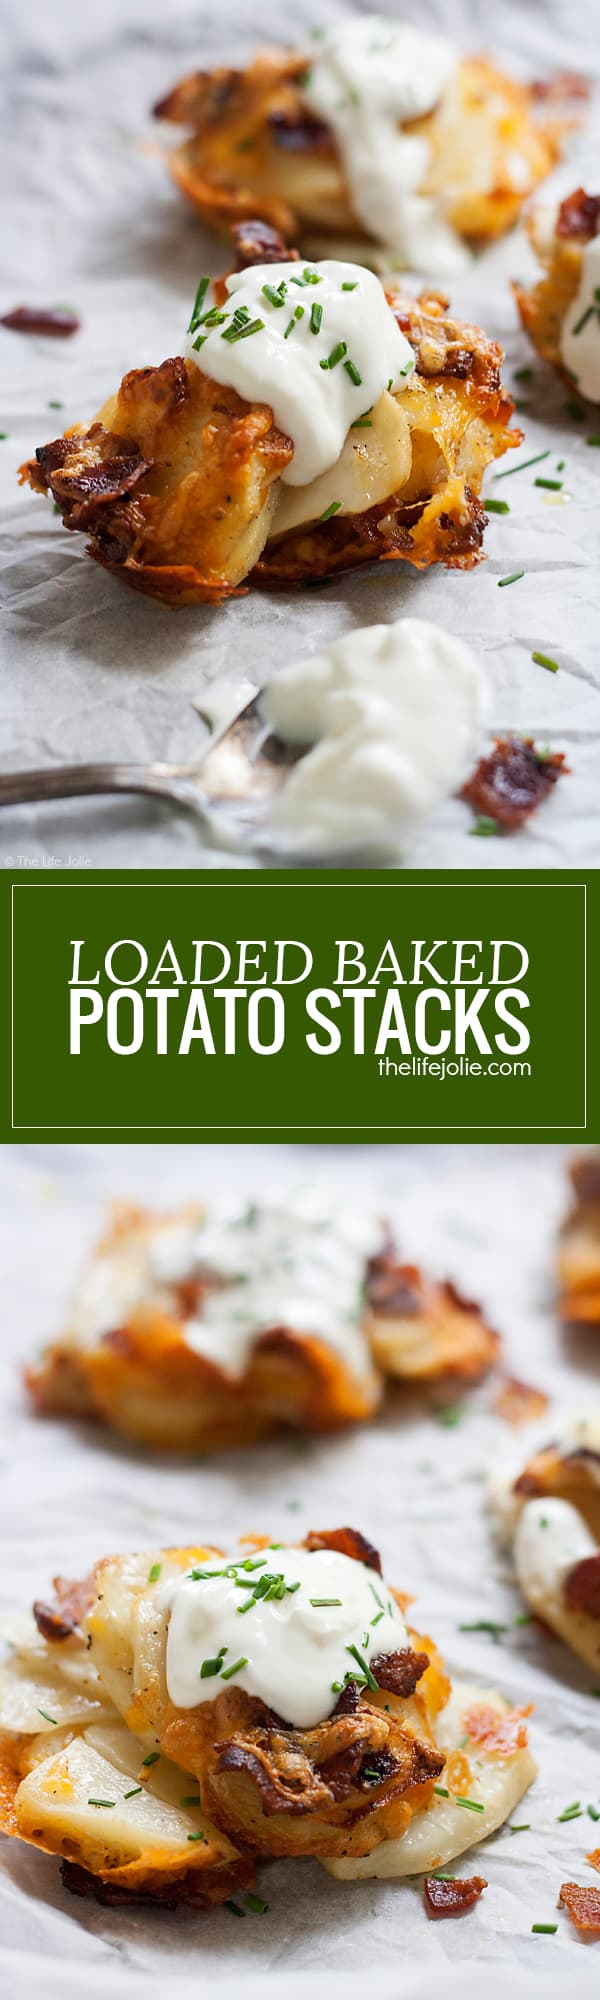 This Loaded Baked Potato Stacks recipe is such an easy side dish for a weeknight dinner. Thin slices of potato, seasoned and stacked in the cups of a muffin tin and baked in the oven; these are a tasty addition to any meal and they also make a delicious game day appetizer!